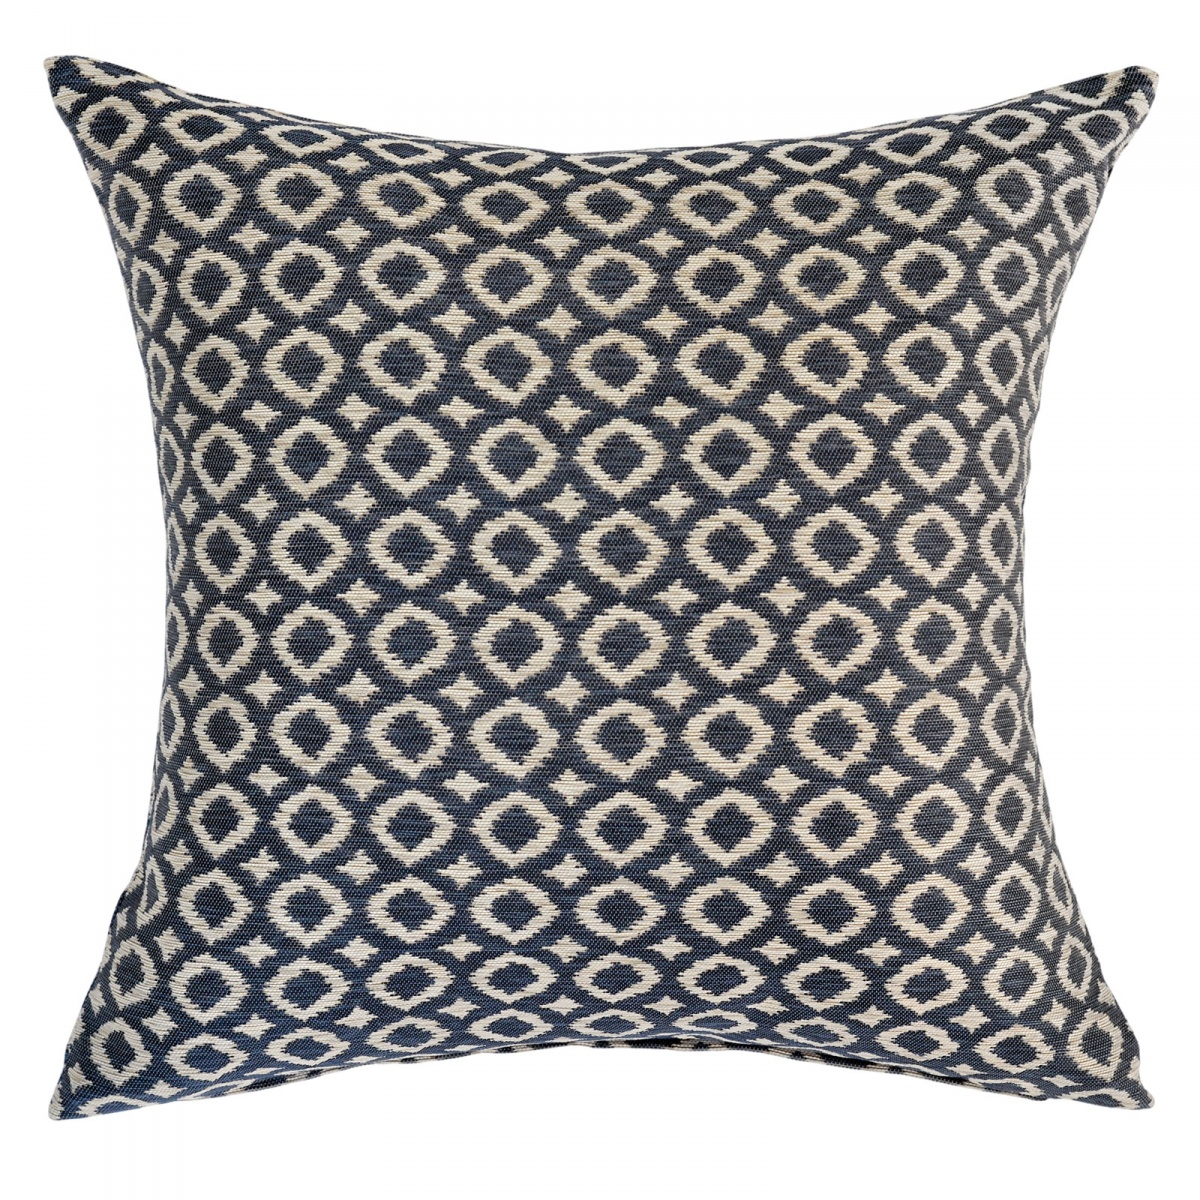 Ayana Navy Cushion - 55x55cm